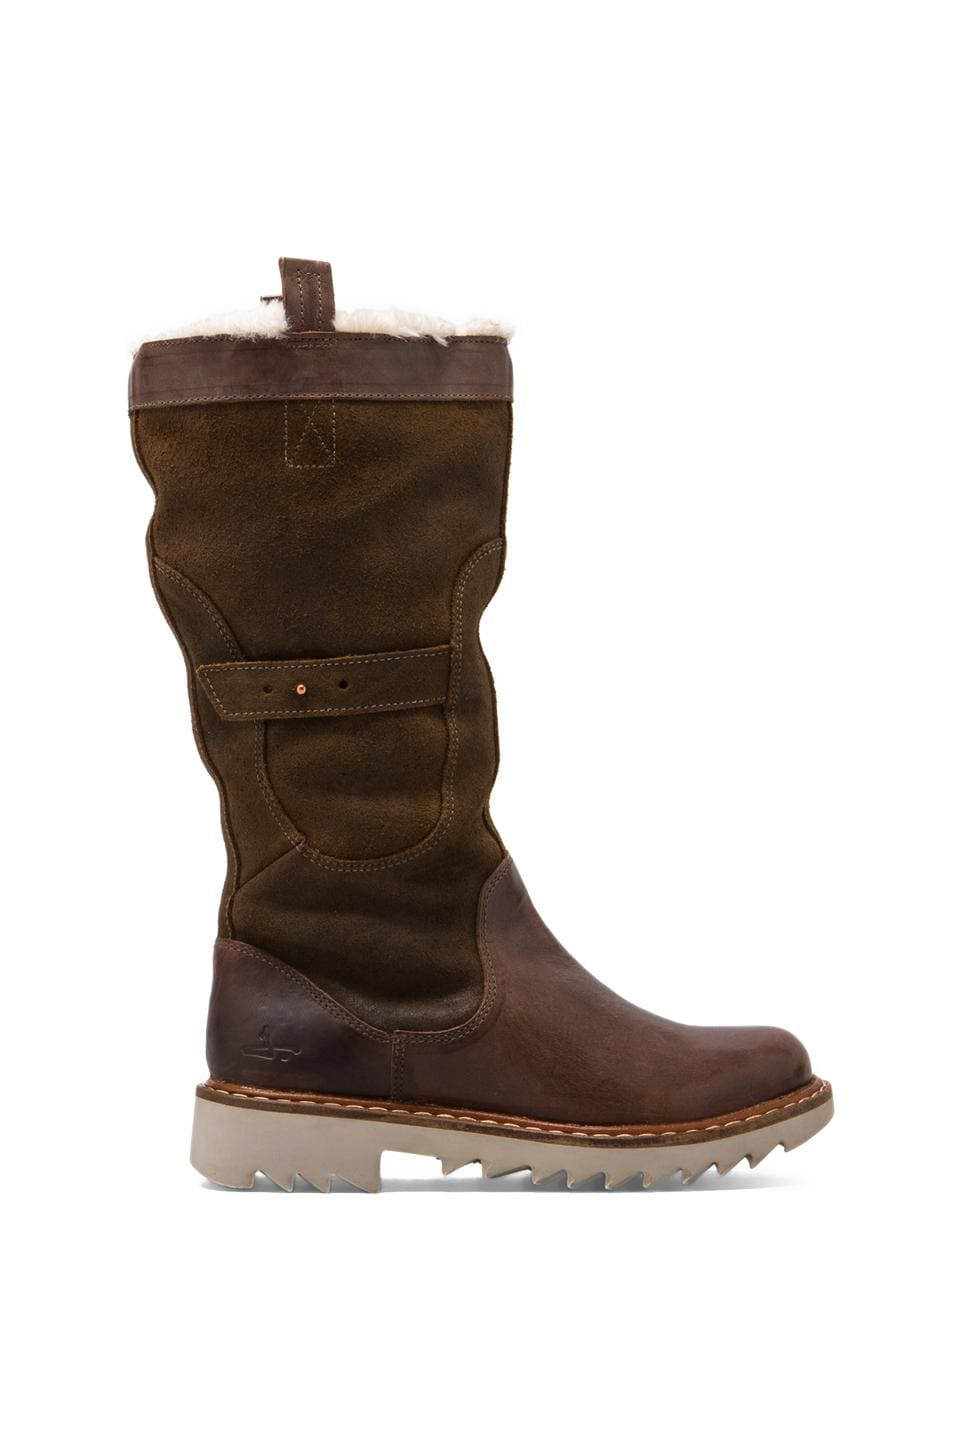 J SHOES Husky Fur 2 Boot in Fango/Mustang